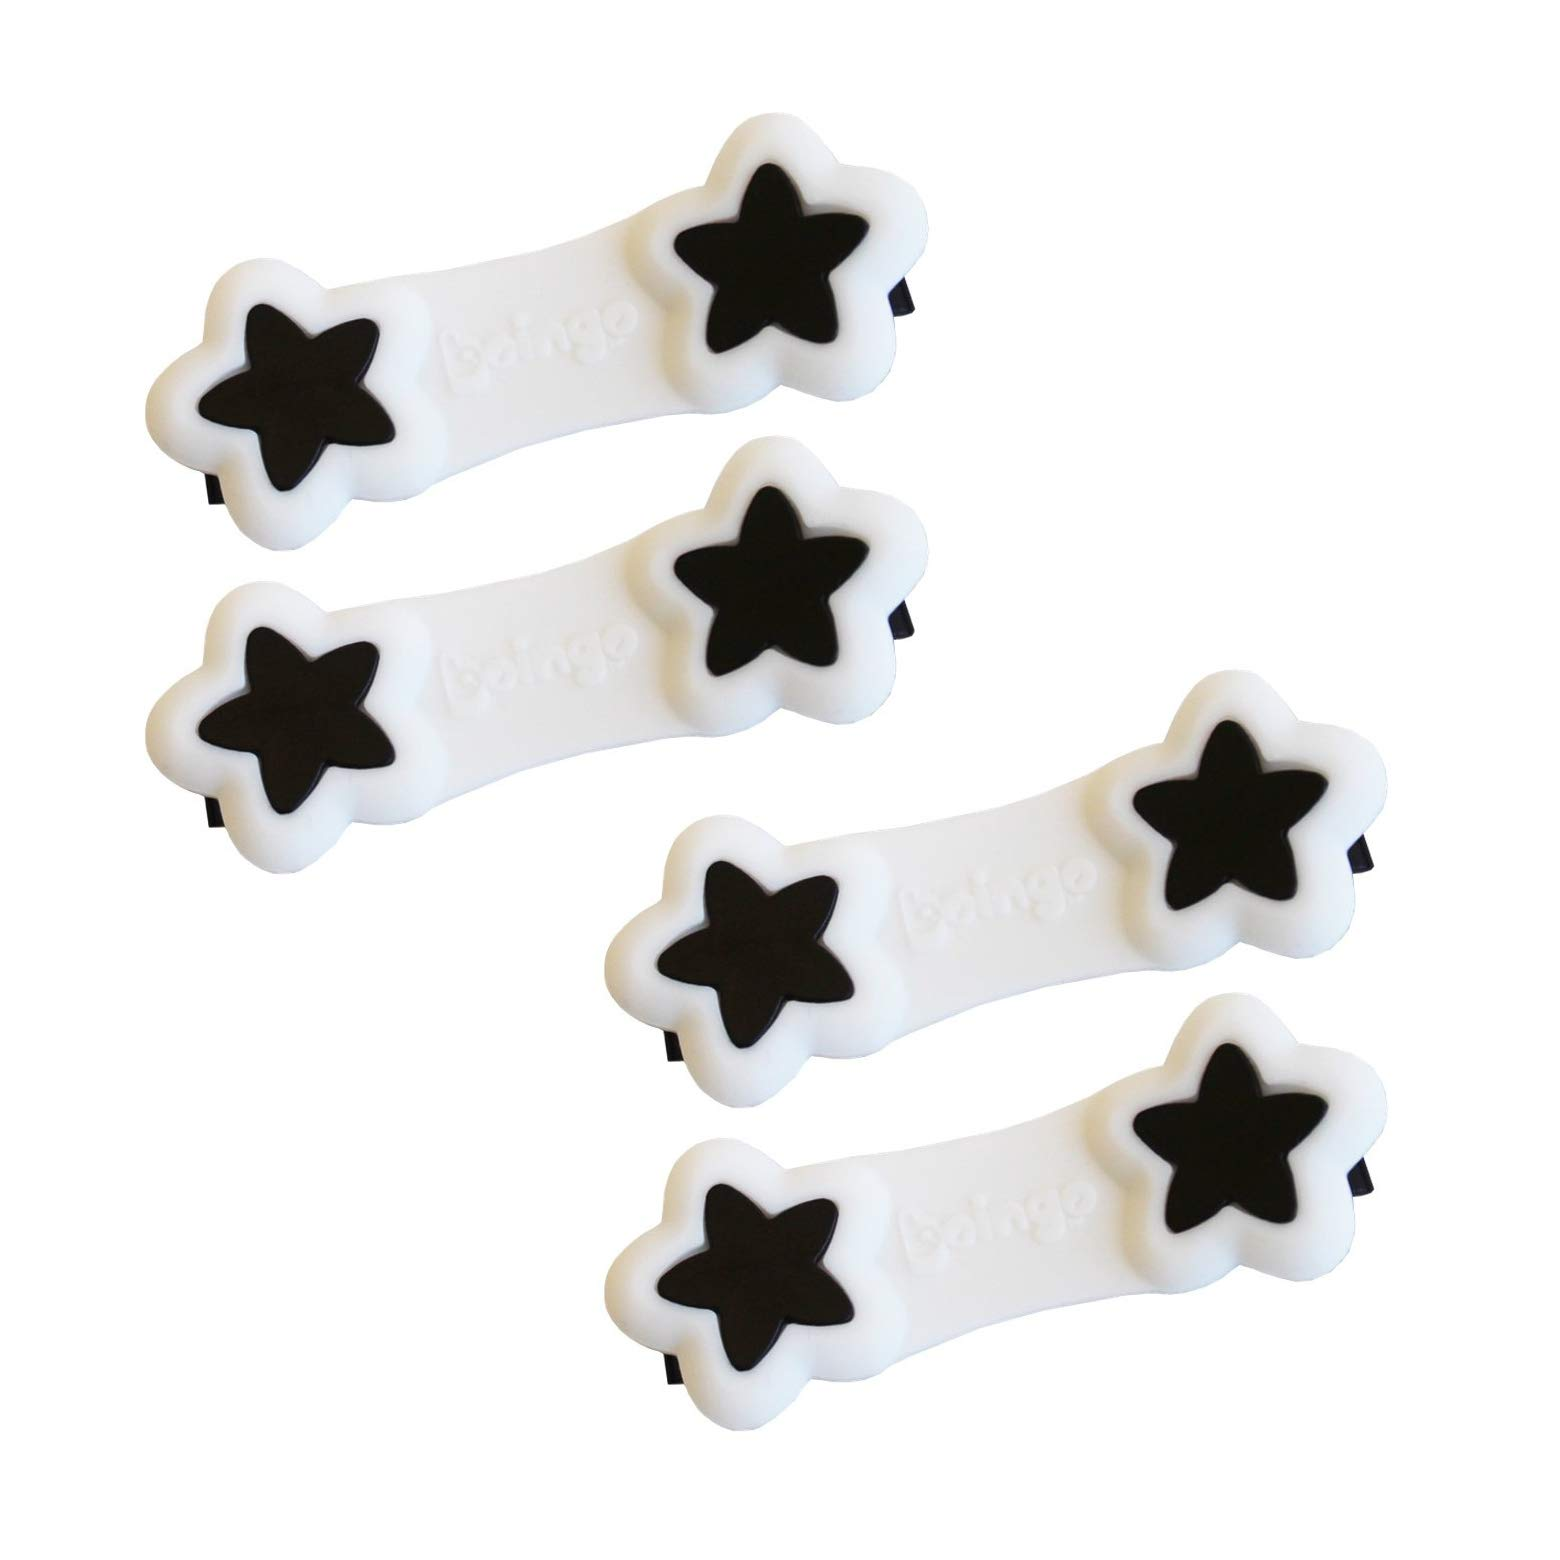 Boingo Baby Cloth Diaper Fastener - White - 2 Pack by Boingo Baby